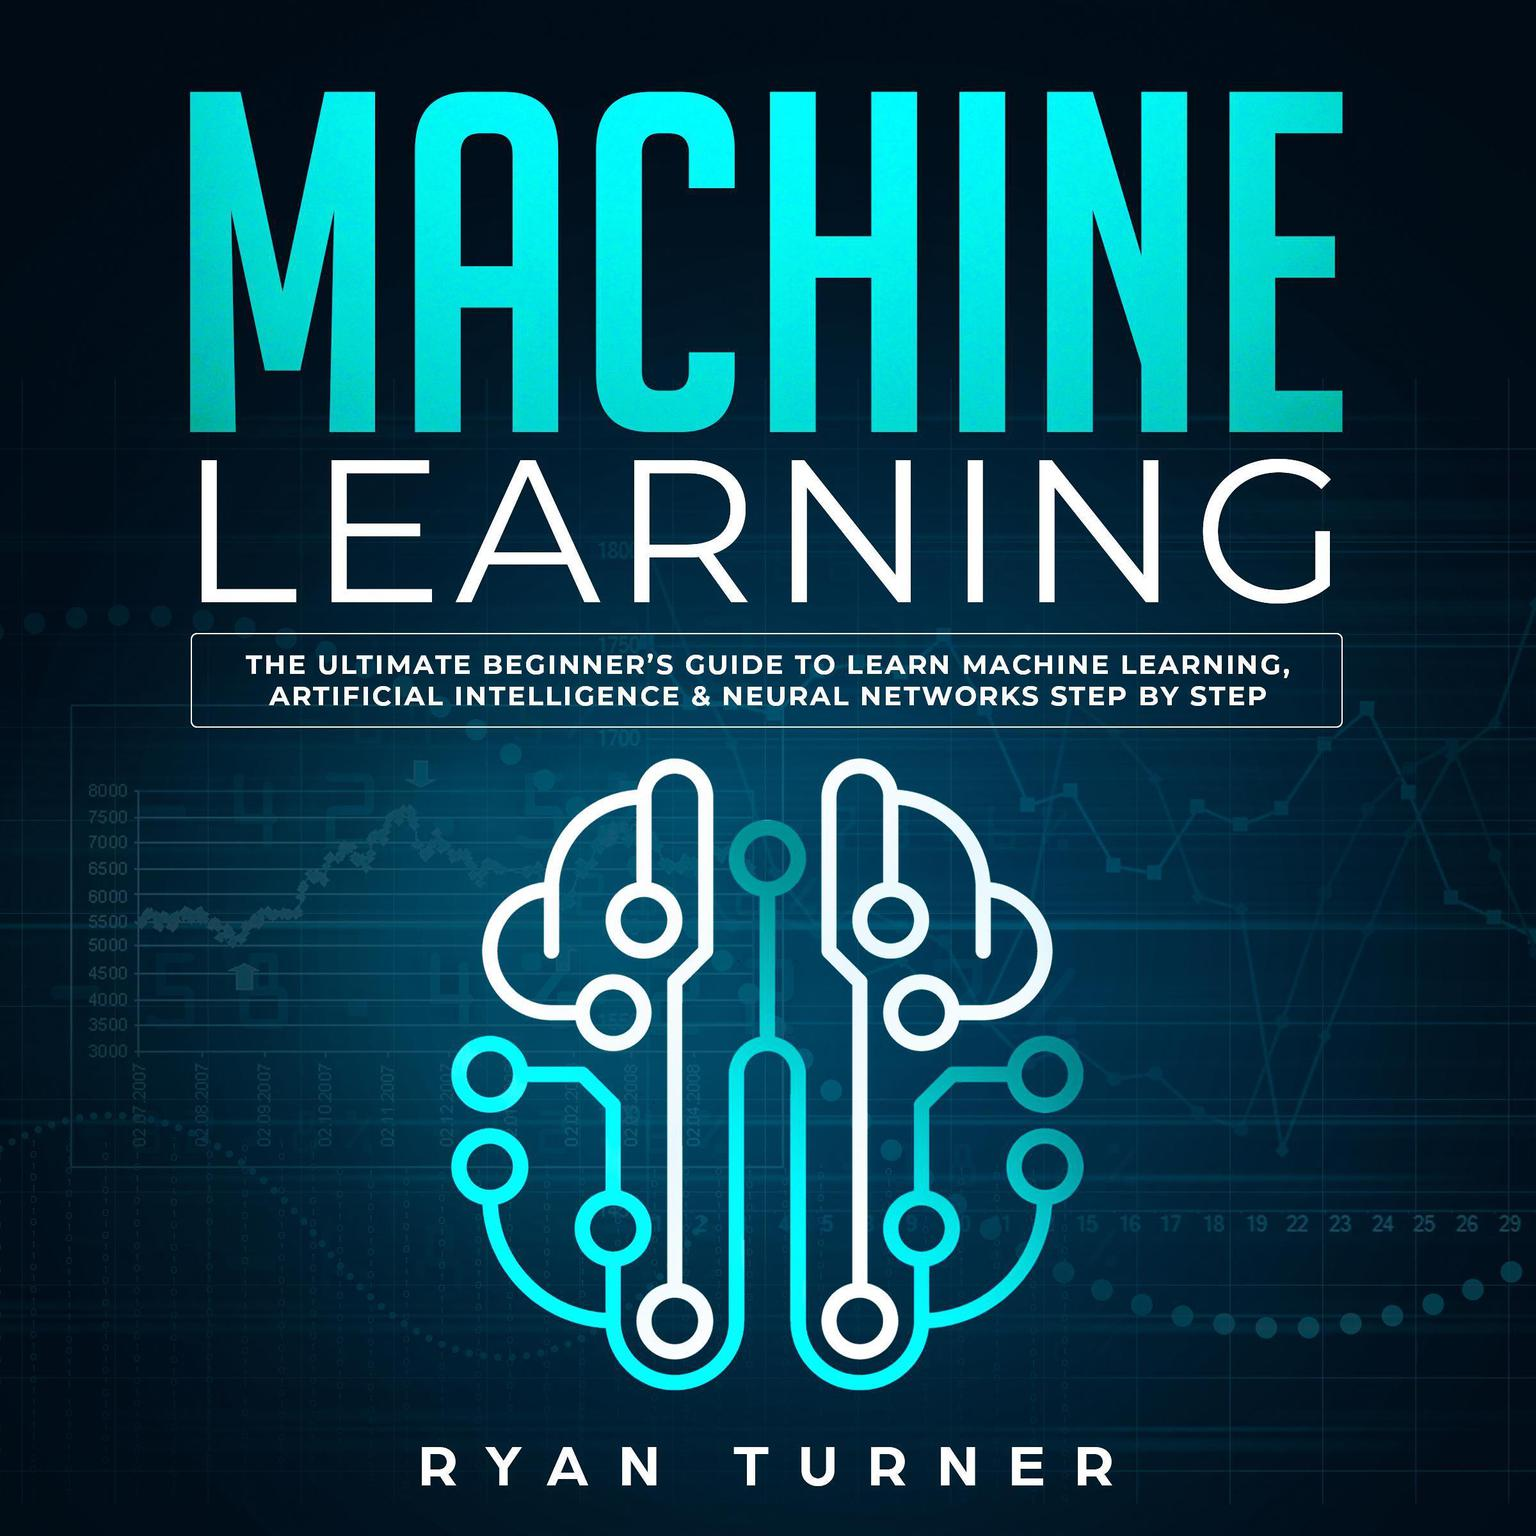 Machine Learning: The Ultimate Beginner's Guide to Learn Machine Learning, Artificial Intelligence & Neural Networks Step by Step Audiobook, by Ryan Turner